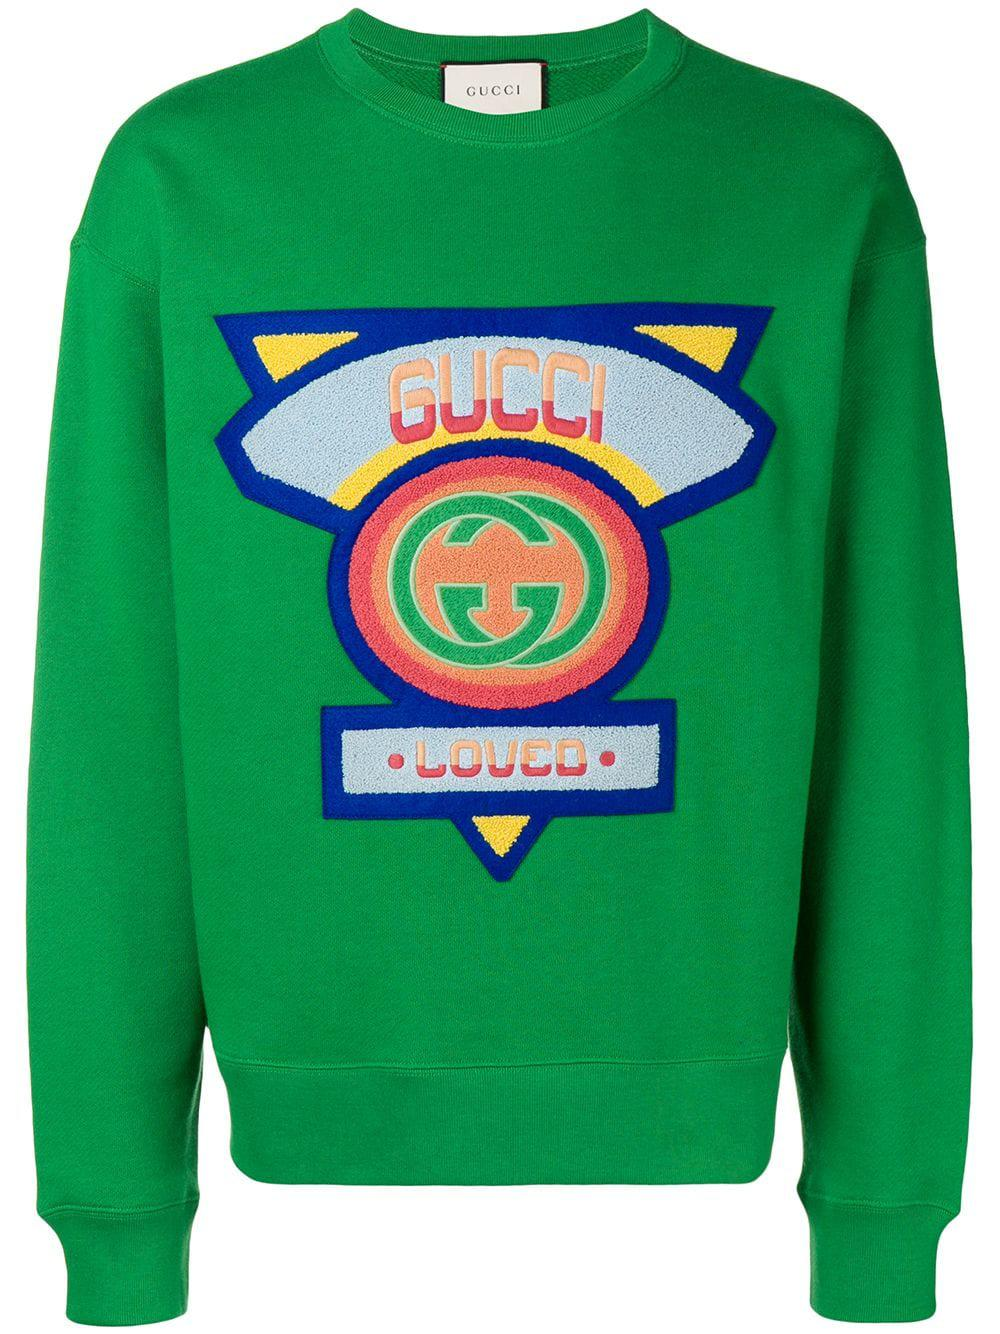 8abecba9370 Gucci Sweatshirt With  80S Patch - Farfetch In Pink